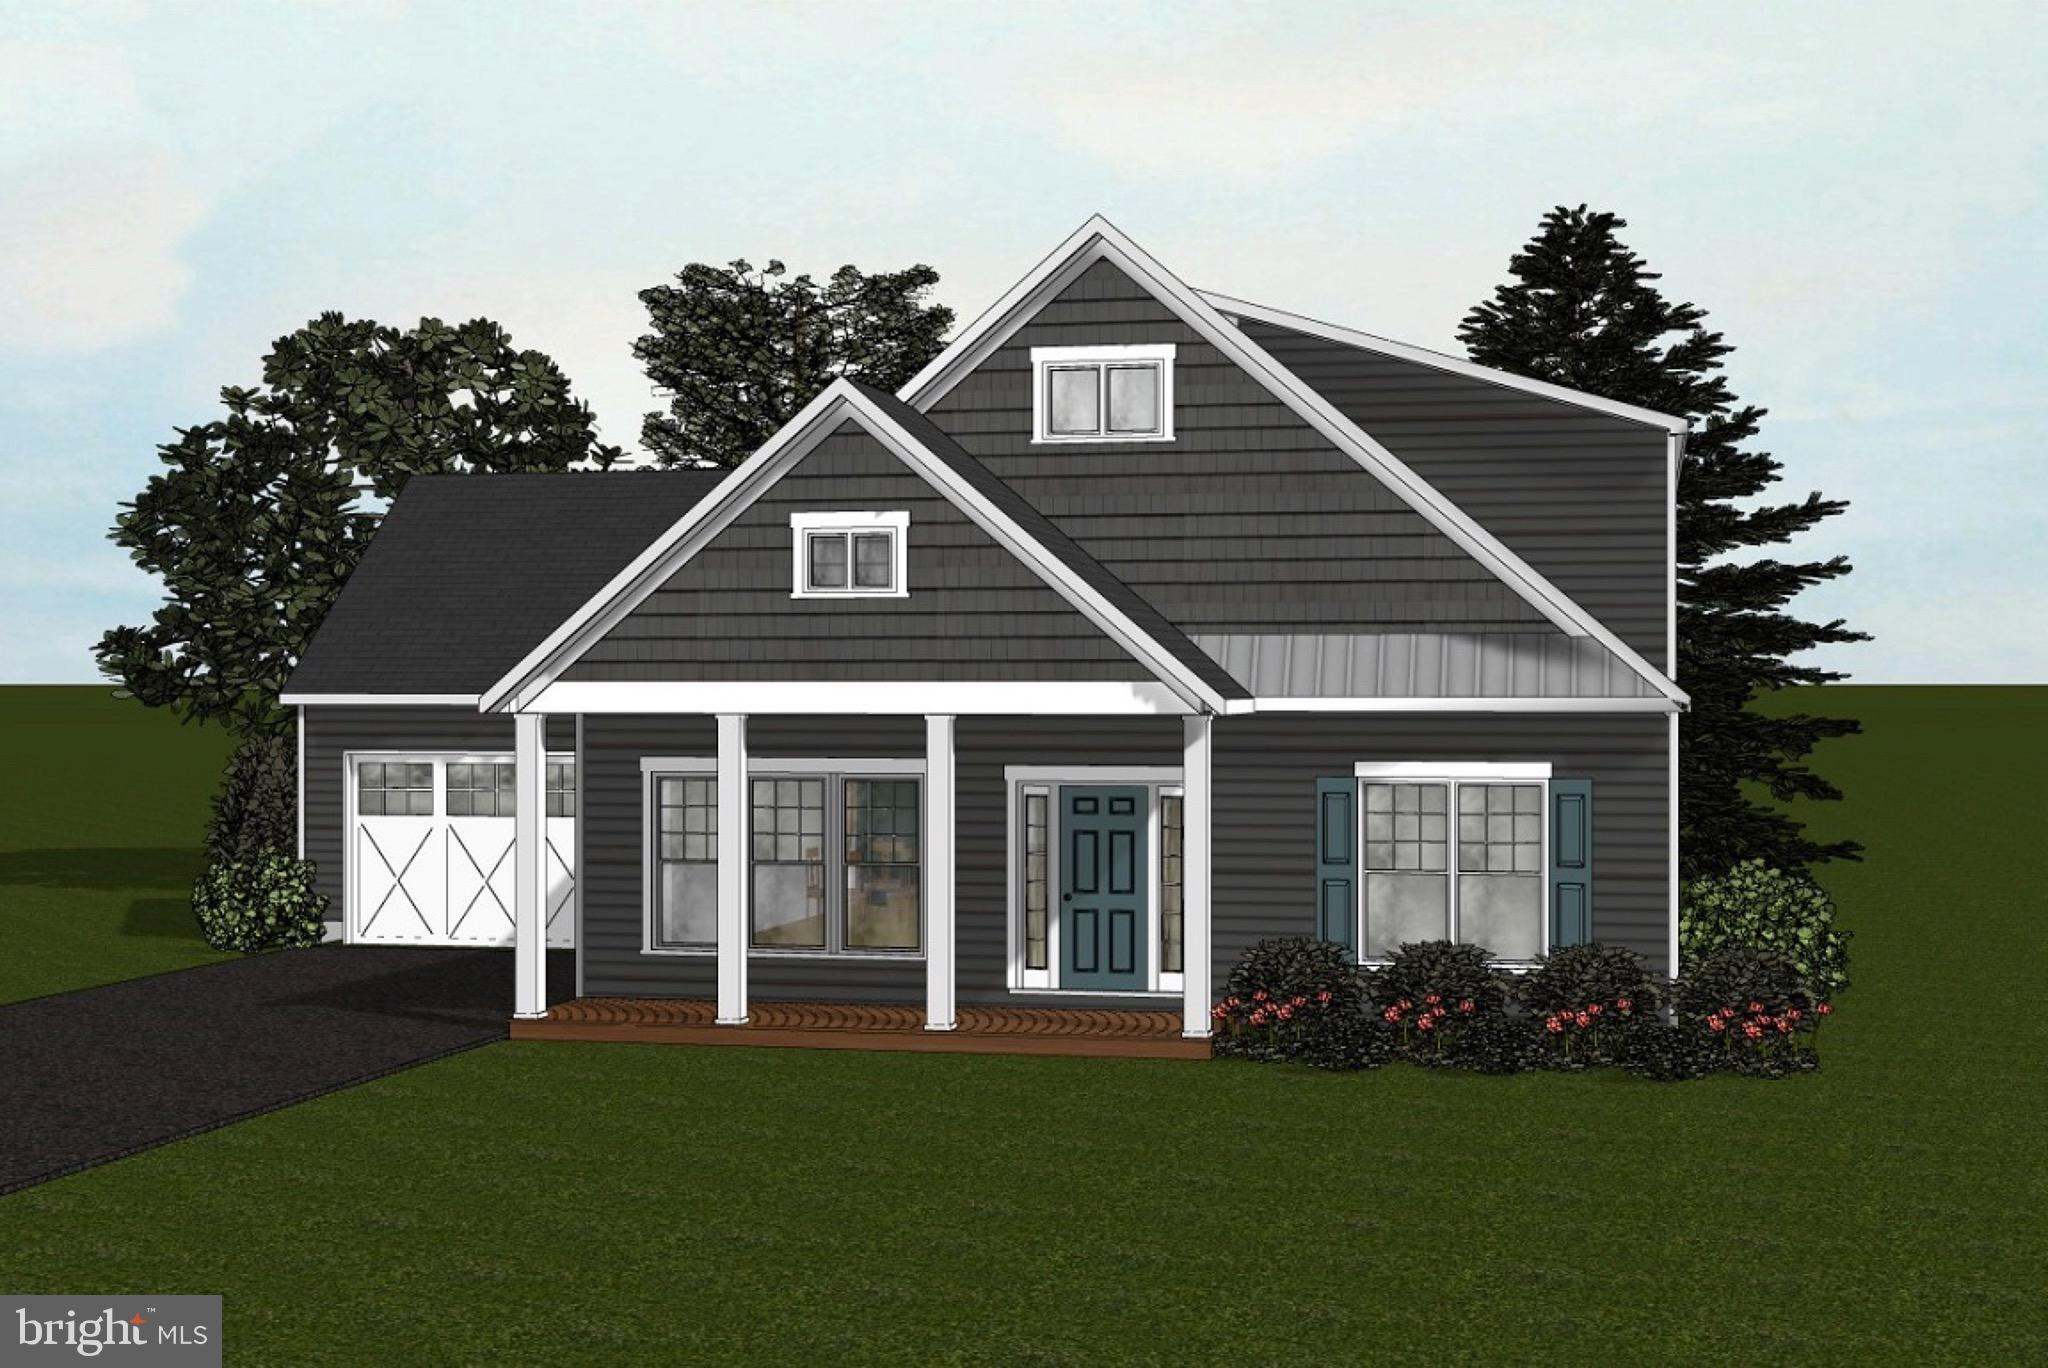 Quality to-be-built home  with a basement in water privileged community!    Walk to the community beach and amenities.   Whitehall Building  can make your dream of owning a brand new home an educational and exciting process.    This builder includes some really nice finishes in the base price - wood floors,  bathroom tile, granite countertops, wide baseboard trim and Hardie siding just to name a few.     You can also customize your preferences to make it your own!    Main level includes 3 bedrooms .    FREE finished rec room and full bathroom for  basement level with contract by 7/4/2020.   Optional finished upper level with 4th and 5th bedrooms plus a full bath.   Use one of the builder's lenders for the construction-permanent loan and the title company and receive $10,000 credit toward your finishes/options.  There is a small cottage on the property that will be removed to build the new house.  Photos are representative of previous homes built by this builder. The Voluntary HOA offers boat slips, boat ramp, playground, pavilion, picnic area, beach and pier.   Close to shopping and great commuting location.     Go to the whitehallbuilding site for more info